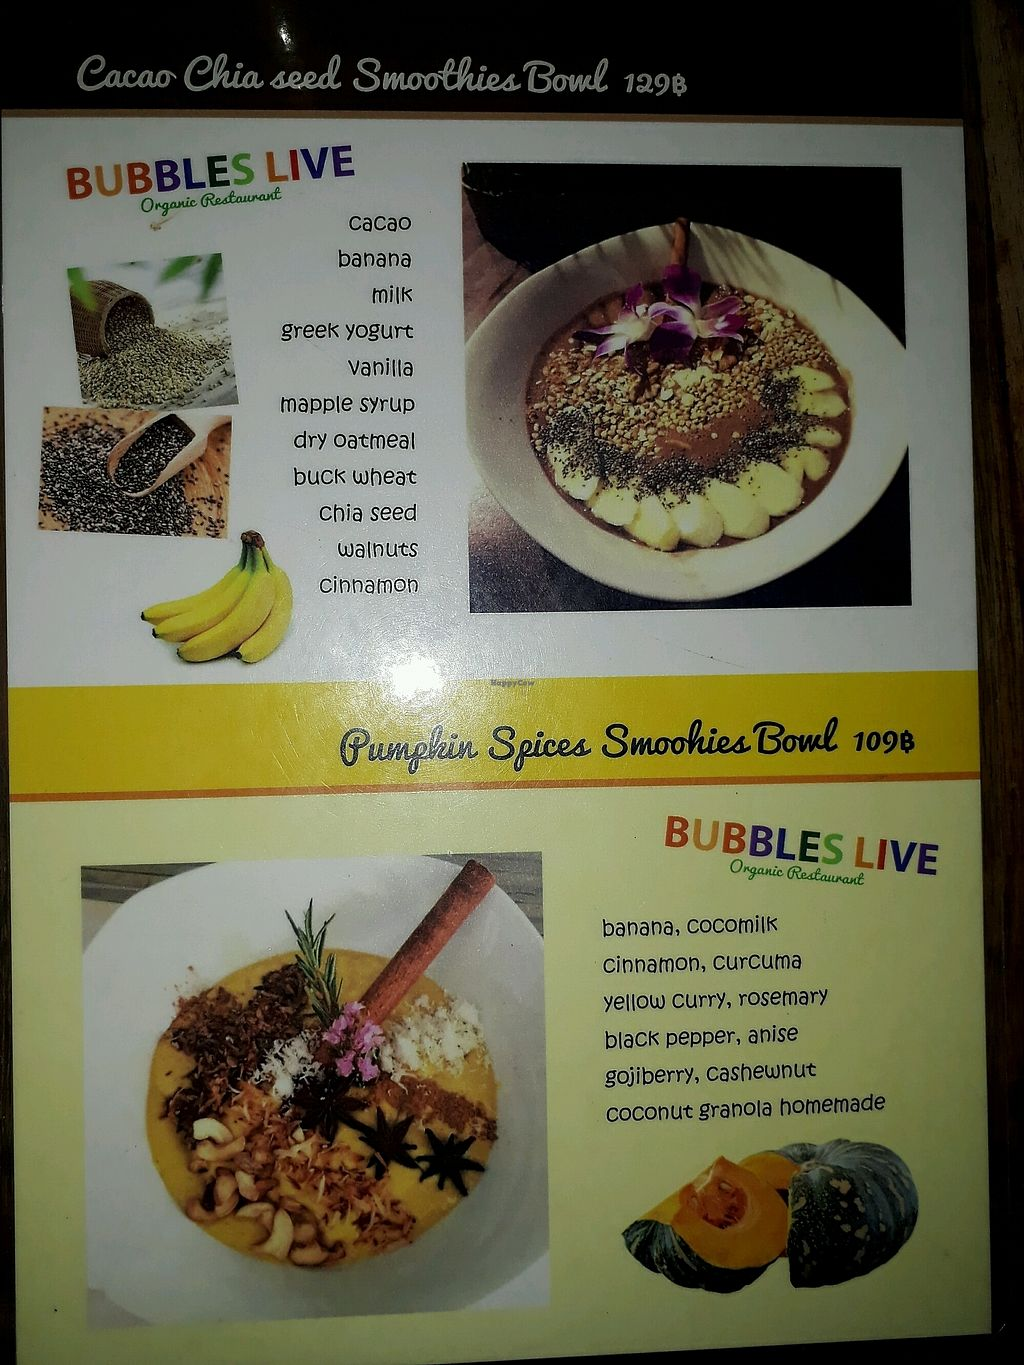 """Photo of Bubbles Live  by <a href=""""/members/profile/LilacHippy"""">LilacHippy</a> <br/>Smoothie Bowls <br/> February 2, 2018  - <a href='/contact/abuse/image/53652/353845'>Report</a>"""